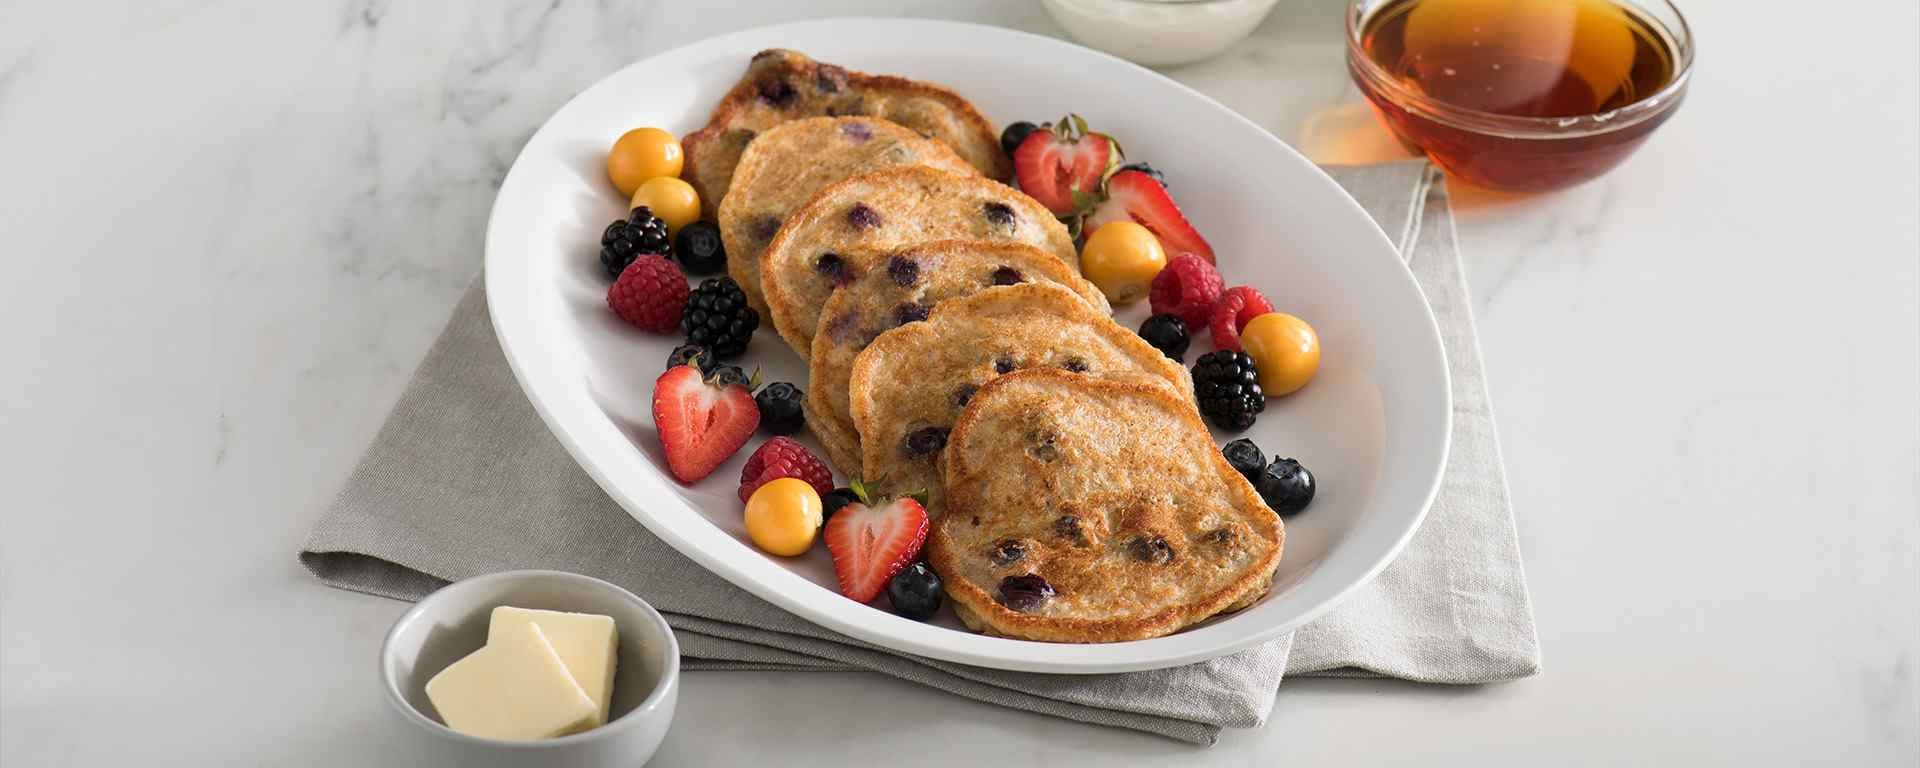 Photo for - Berry and Bran Cottage Cheese Pancakes